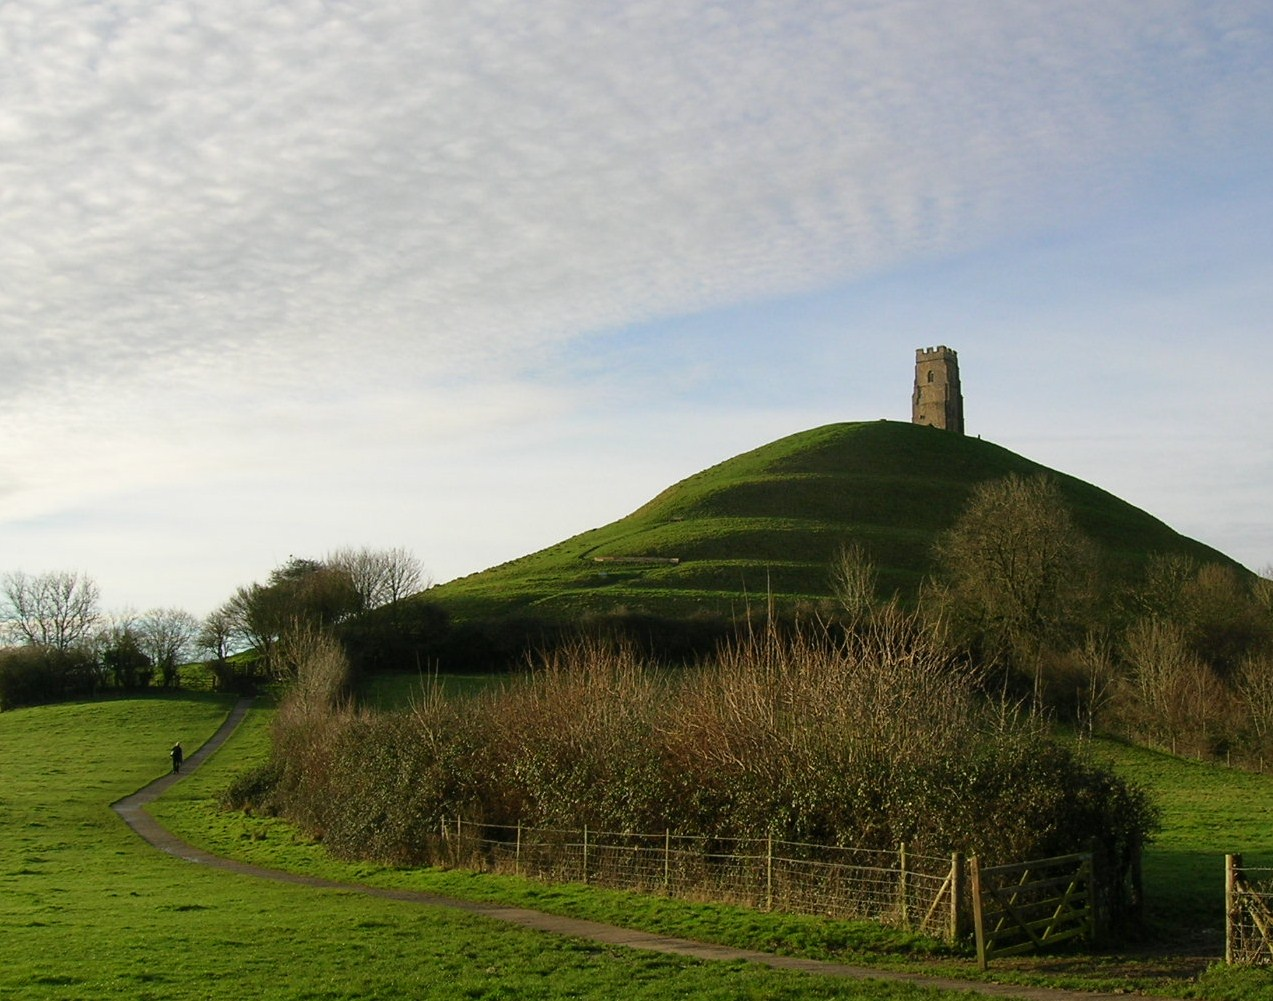 Description glastonbury tor, early morning